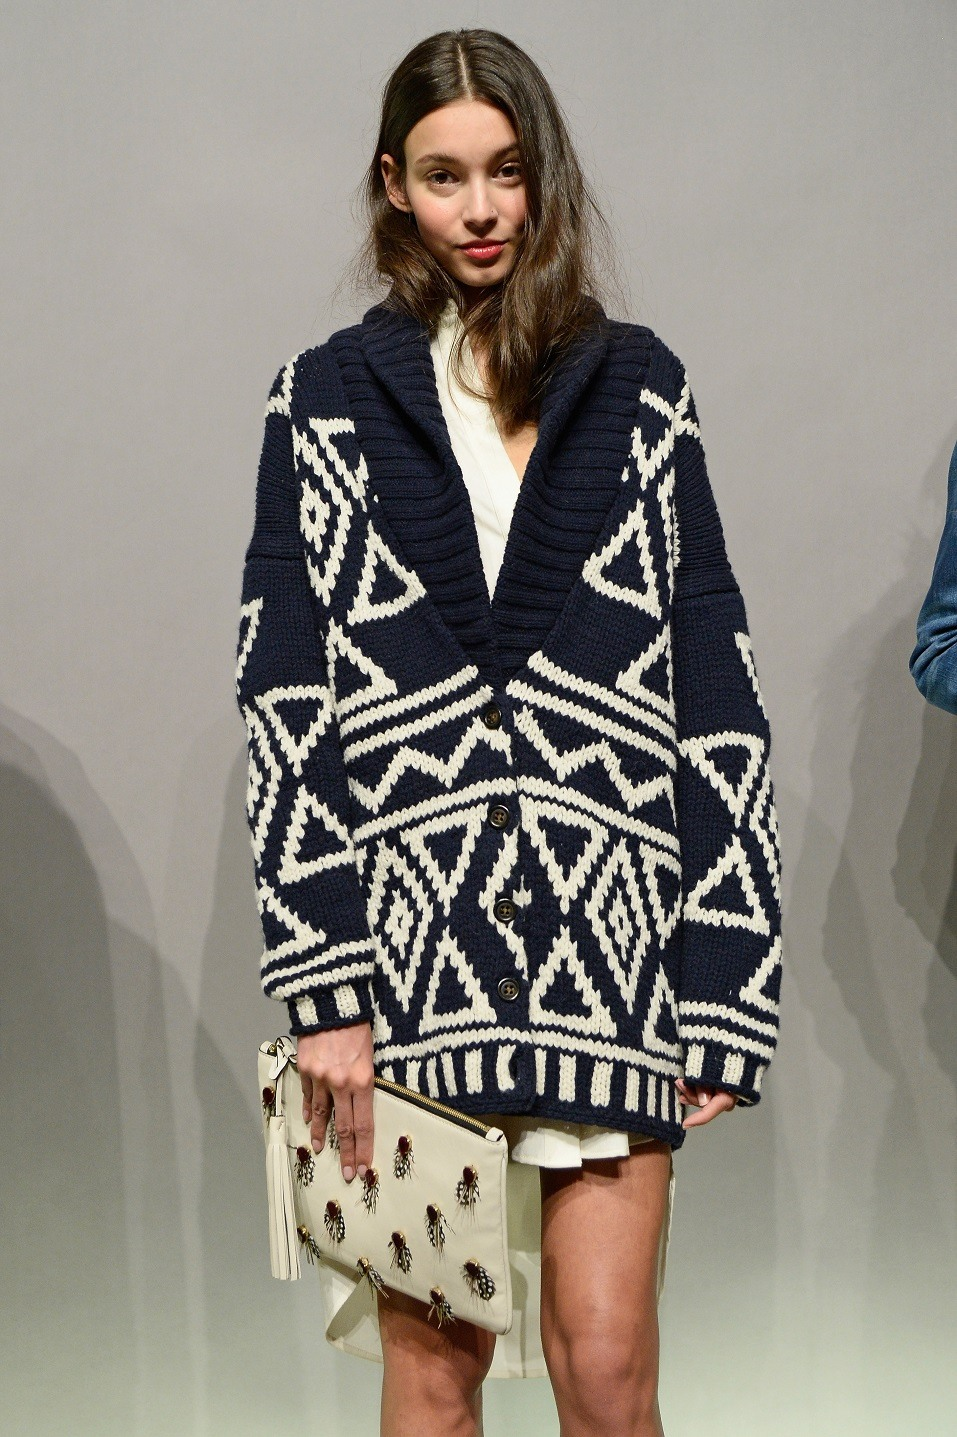 A model poses at the J.Crew presentation during Mercedes-Benz Fashion Week